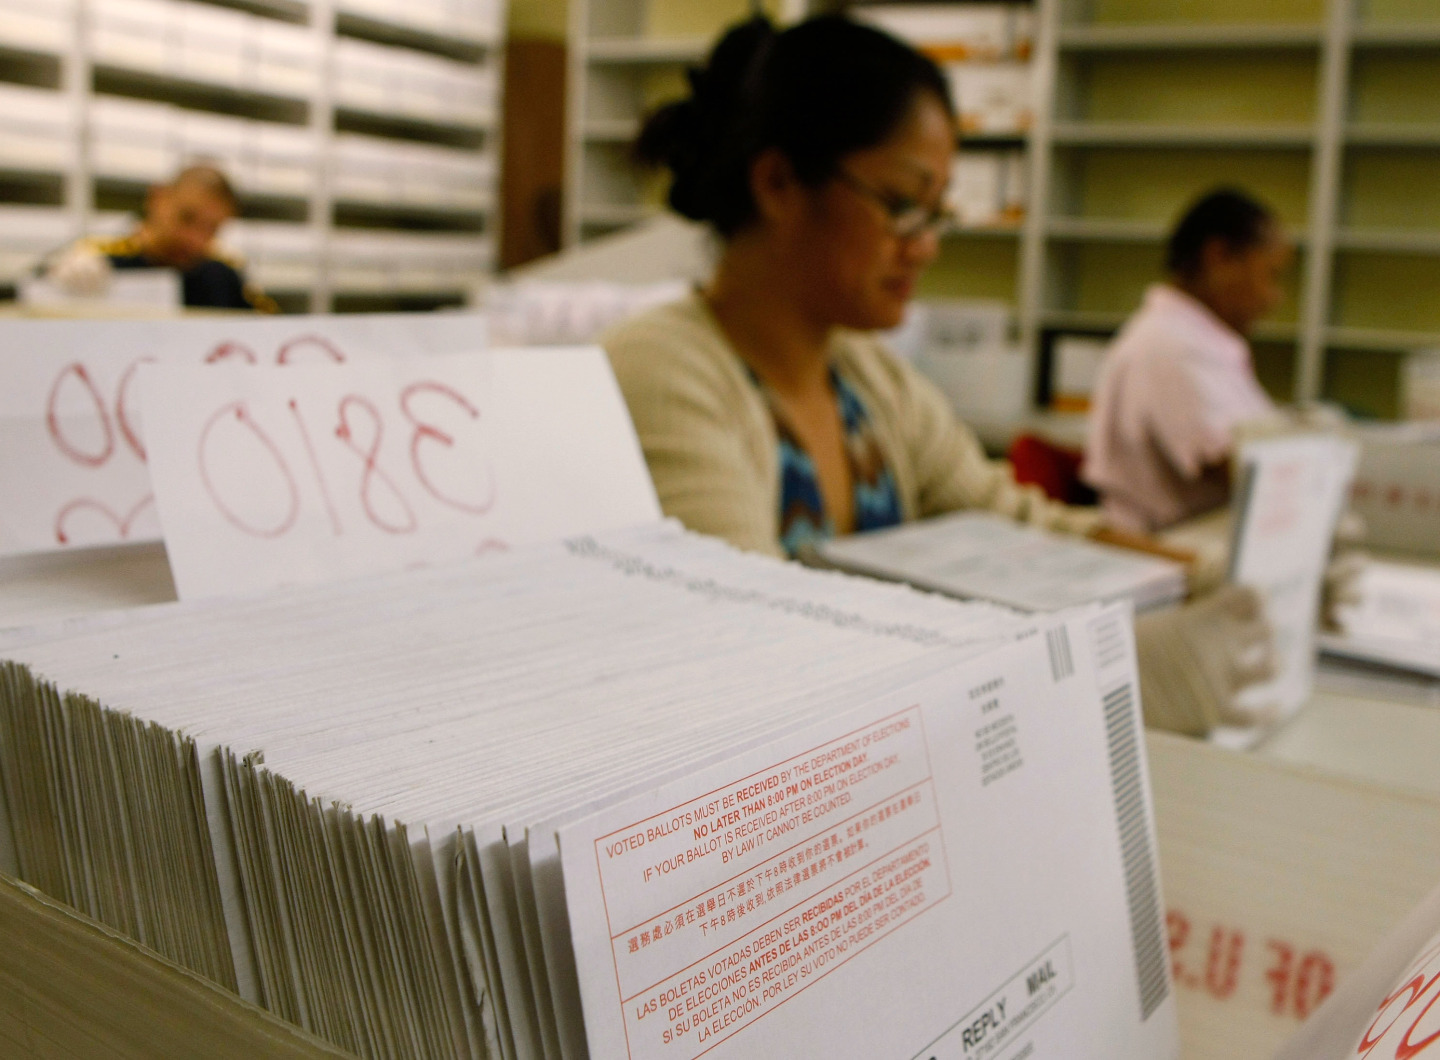 Workers at the San Francisco Department of Elections sort stacks of vote-by-mail ballots by precinct during a past election. (Justin Sullivan/Getty Images)